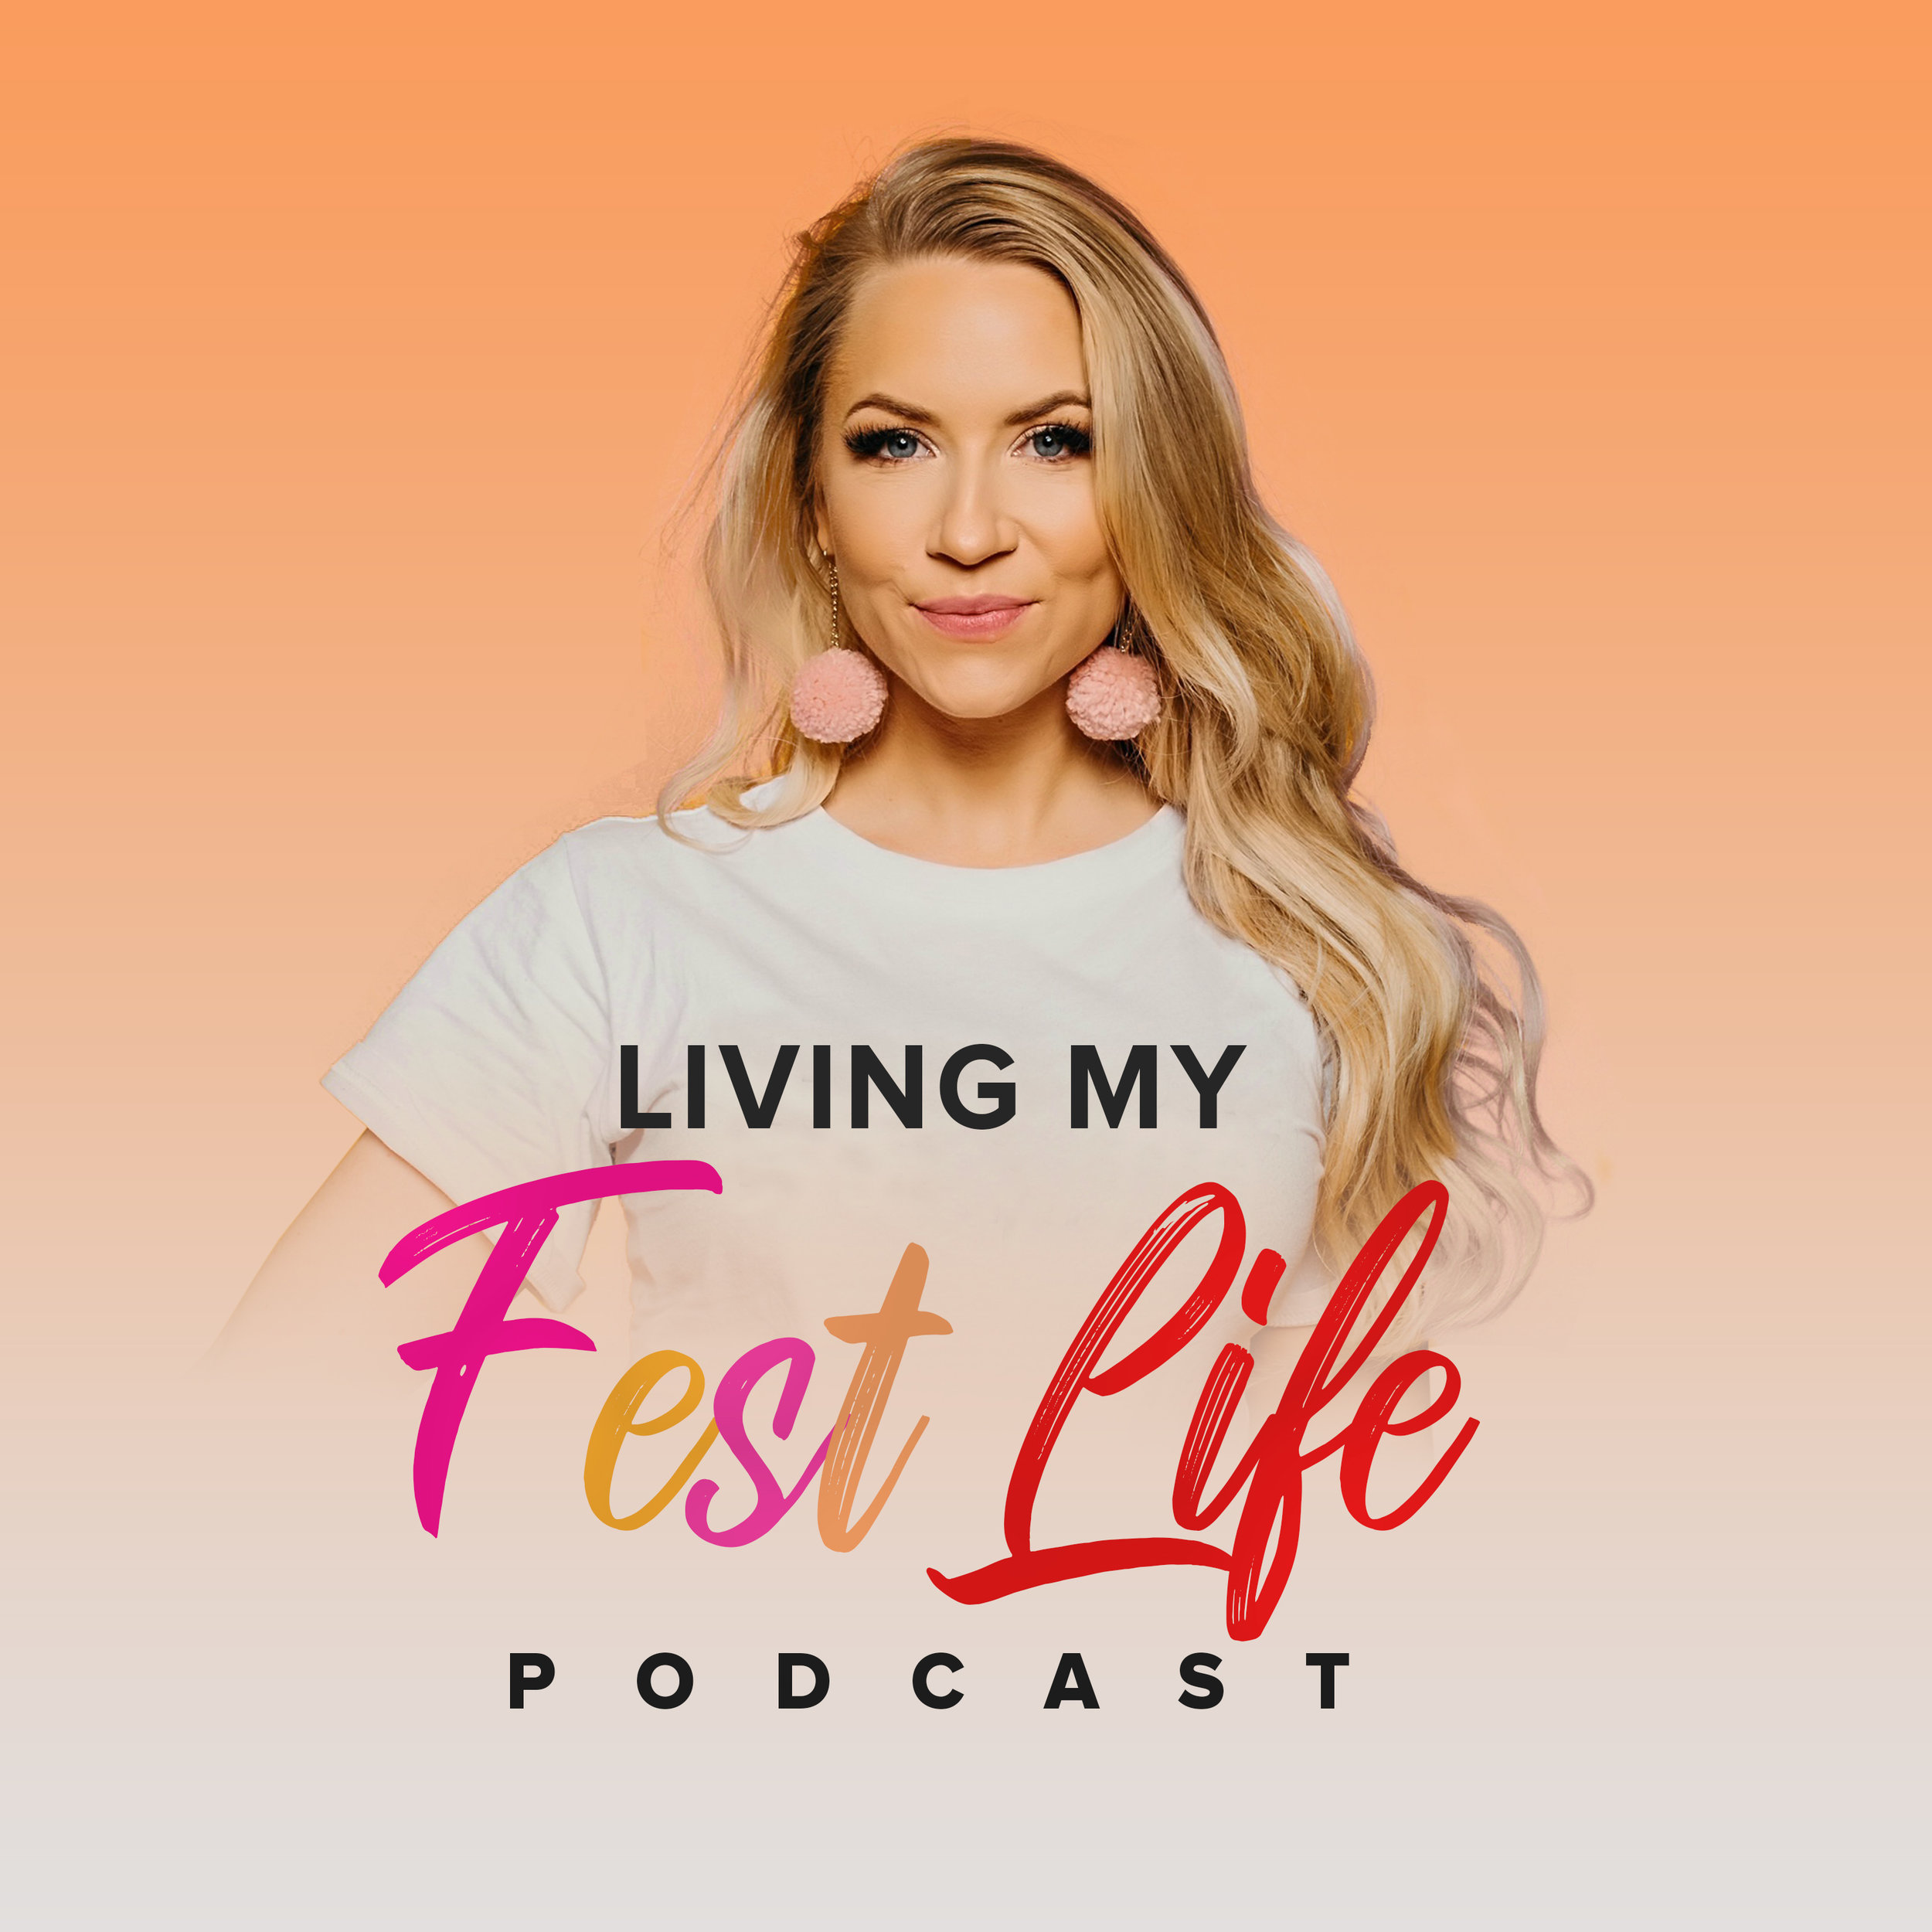 Living My Fest Life - A podcast about festivals, fairs, events and experiences, everything from the nationally known to the local and obscure. Available on iTunes Available on Spotify